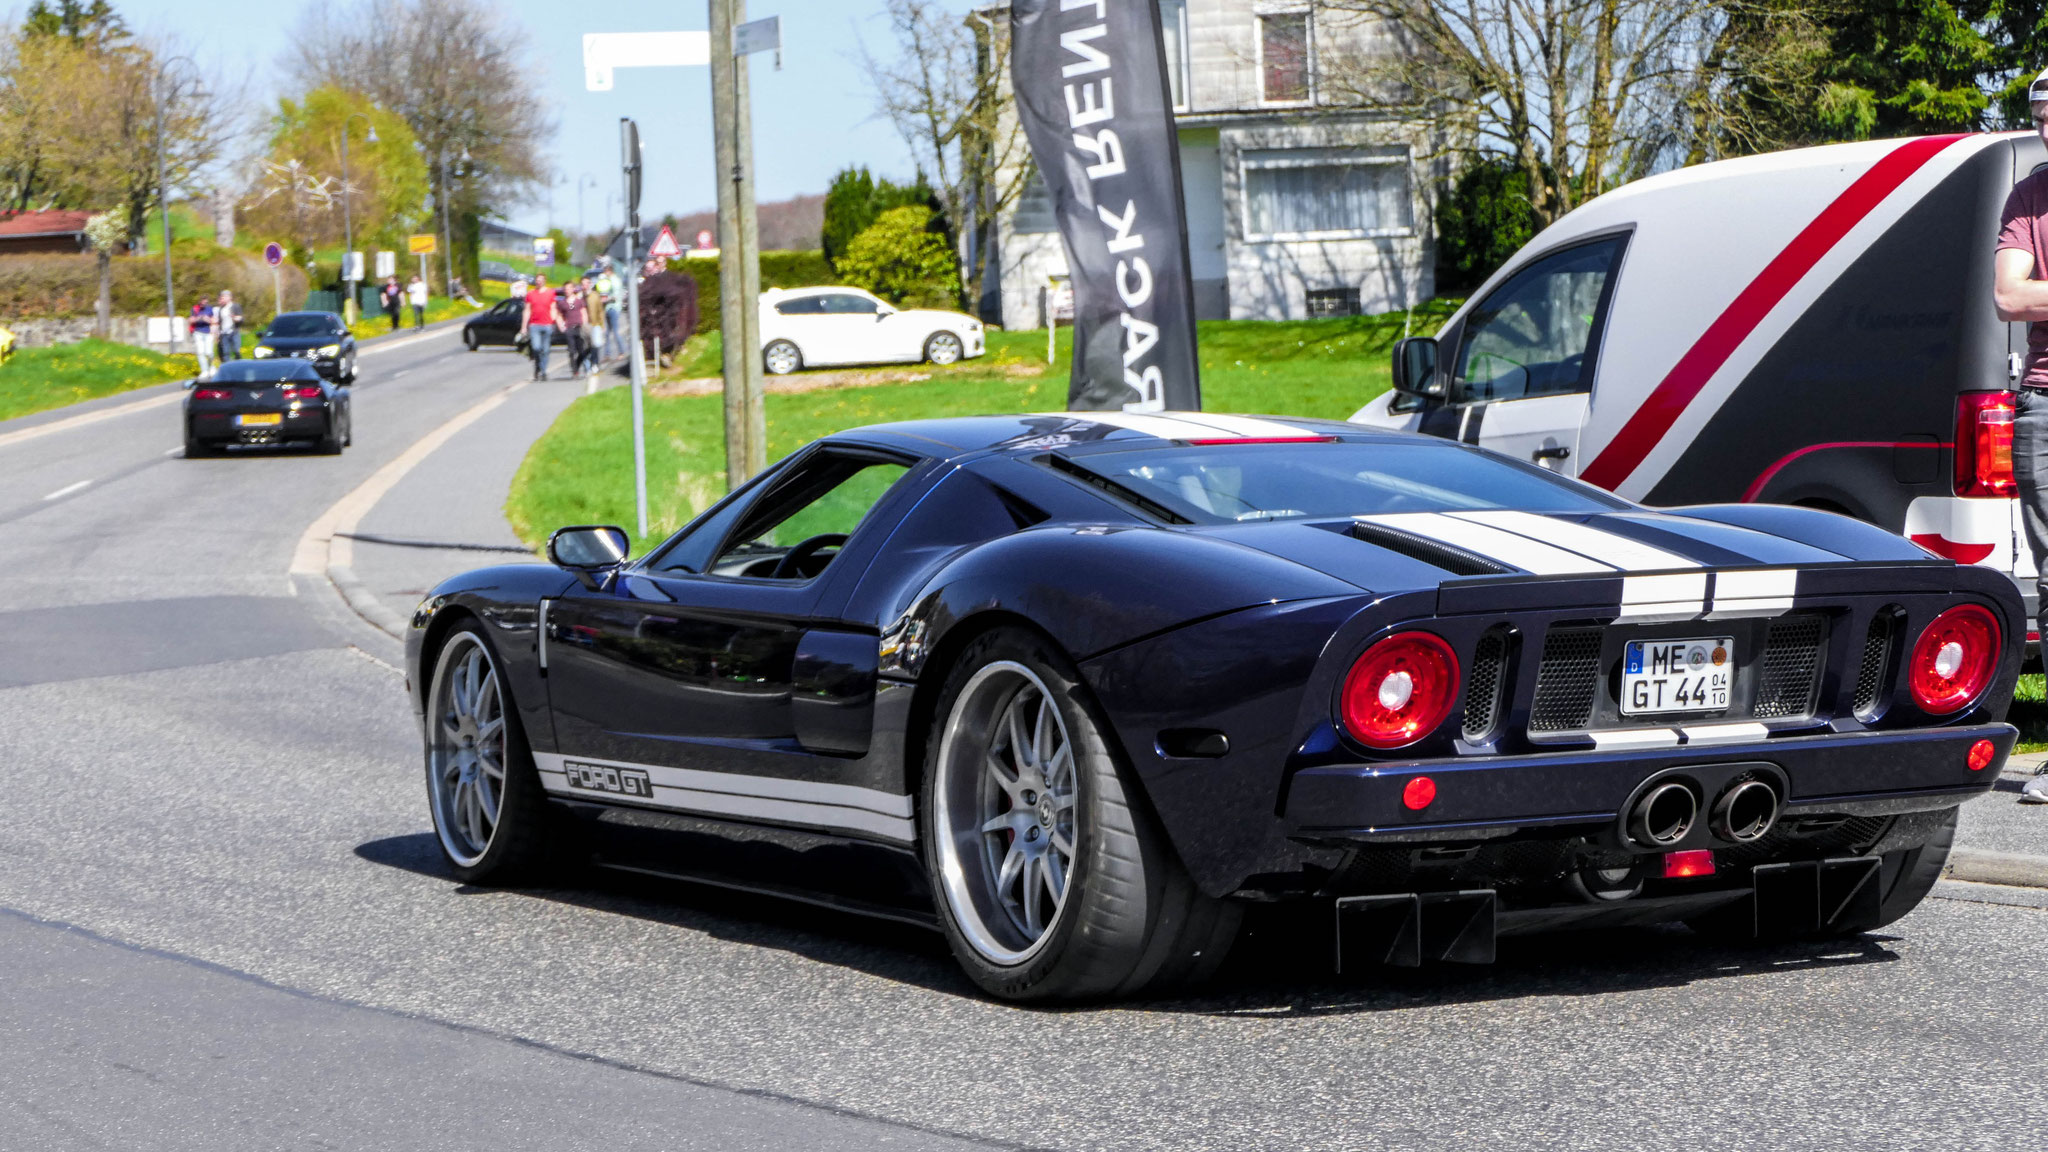 Ford GT - ME-GT-44